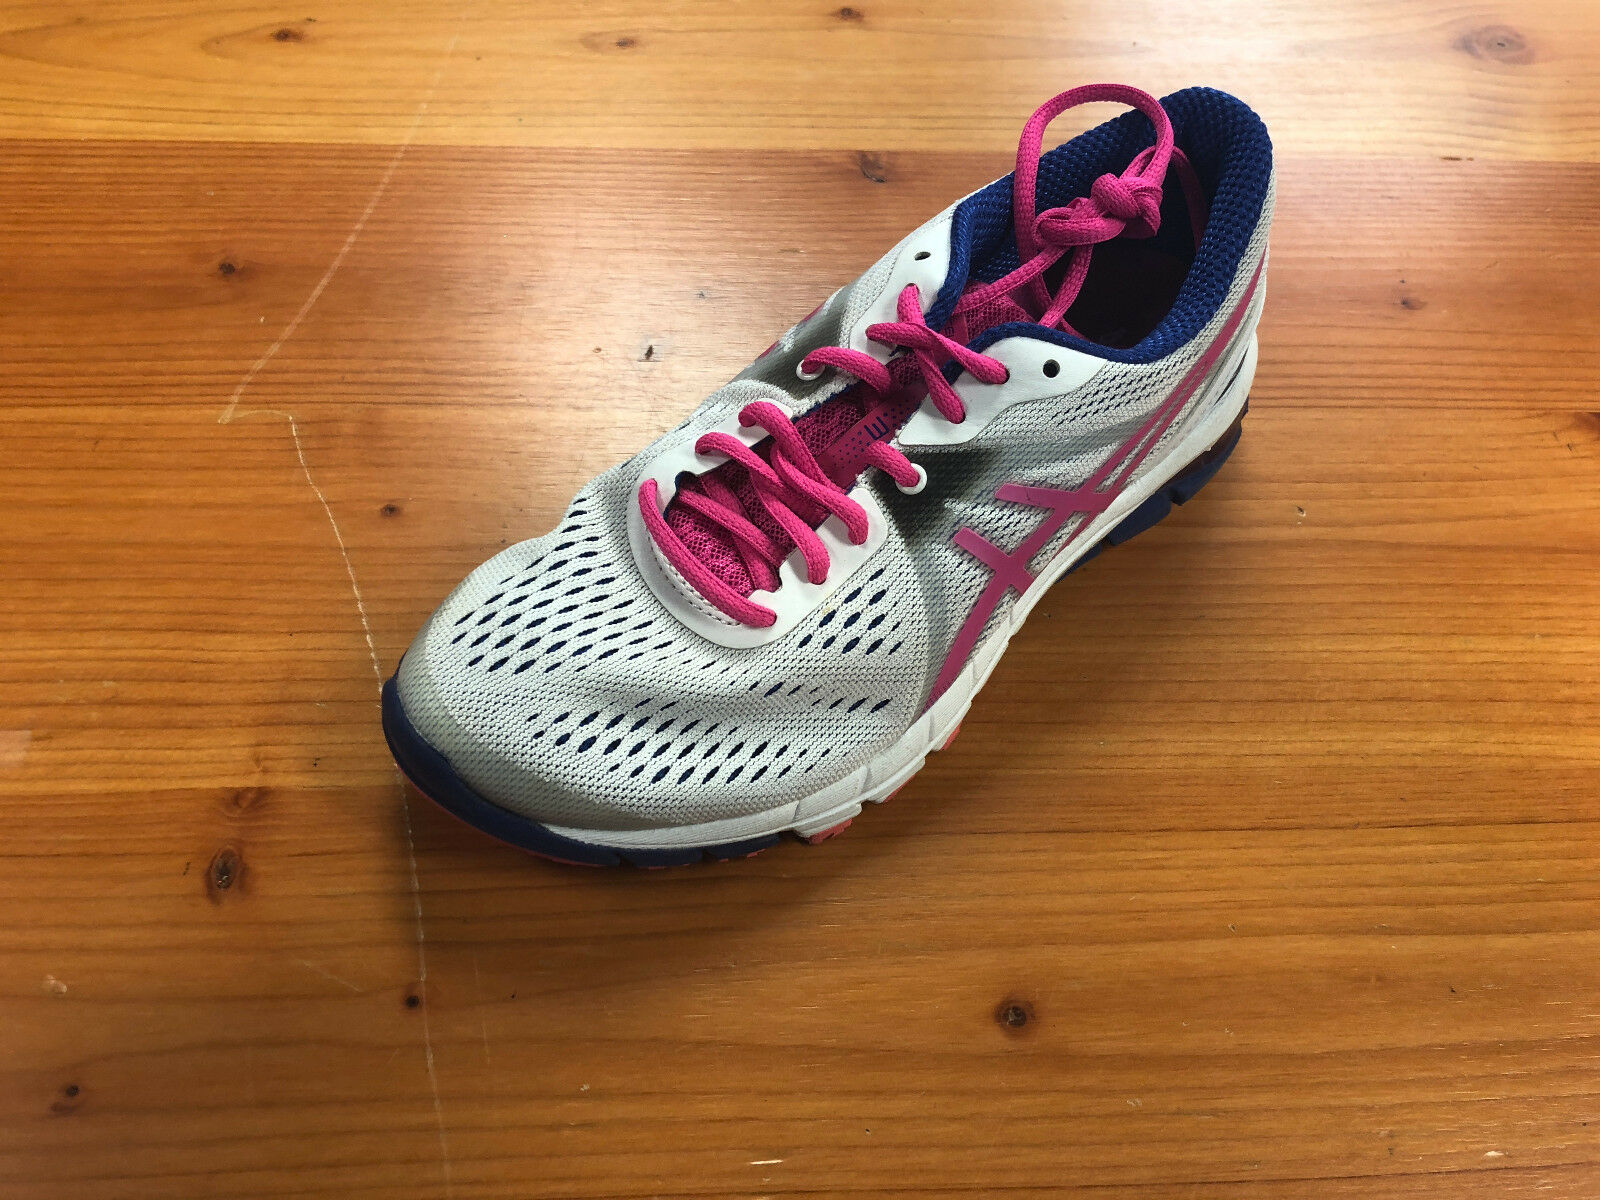 Women's Asics Gel Excess 3 RN Preowned Tennis shoes Size 6